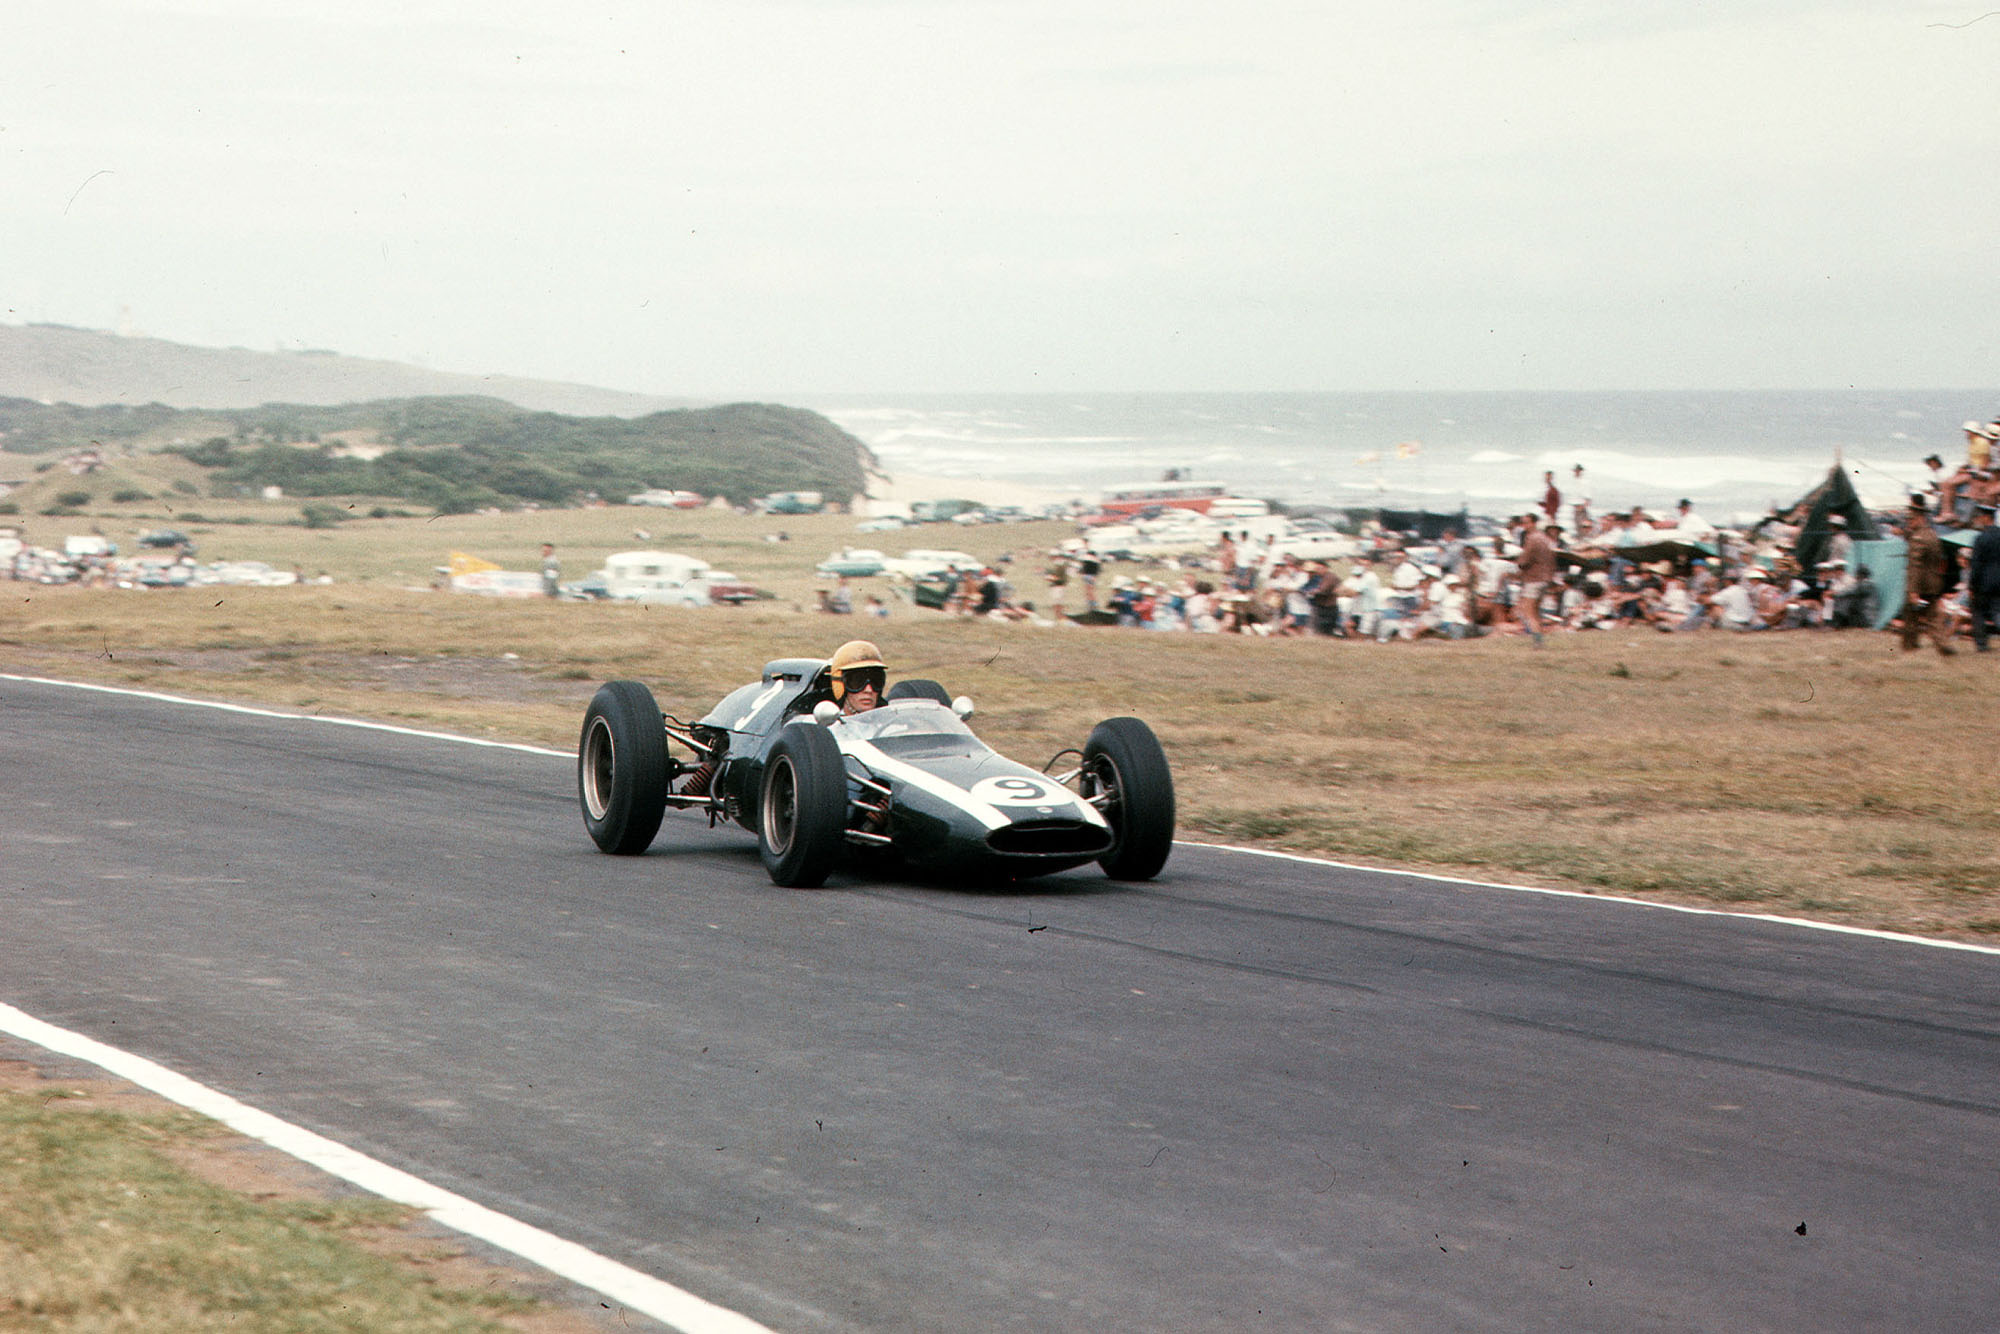 Tony Maggs in his Cooper Climax